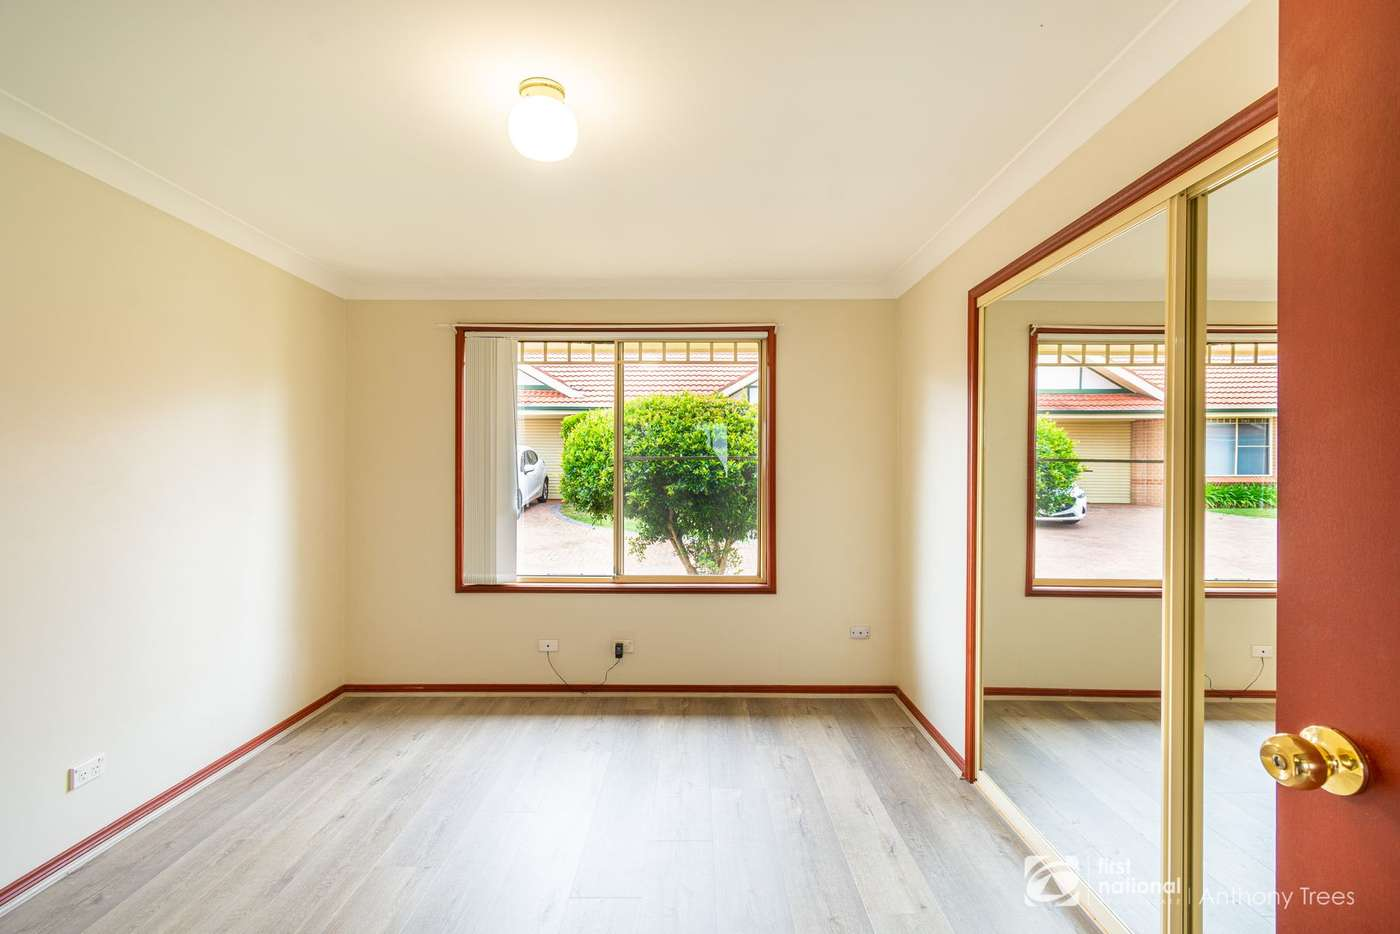 Sixth view of Homely villa listing, 5/7 Corunna Road, Eastwood NSW 2122